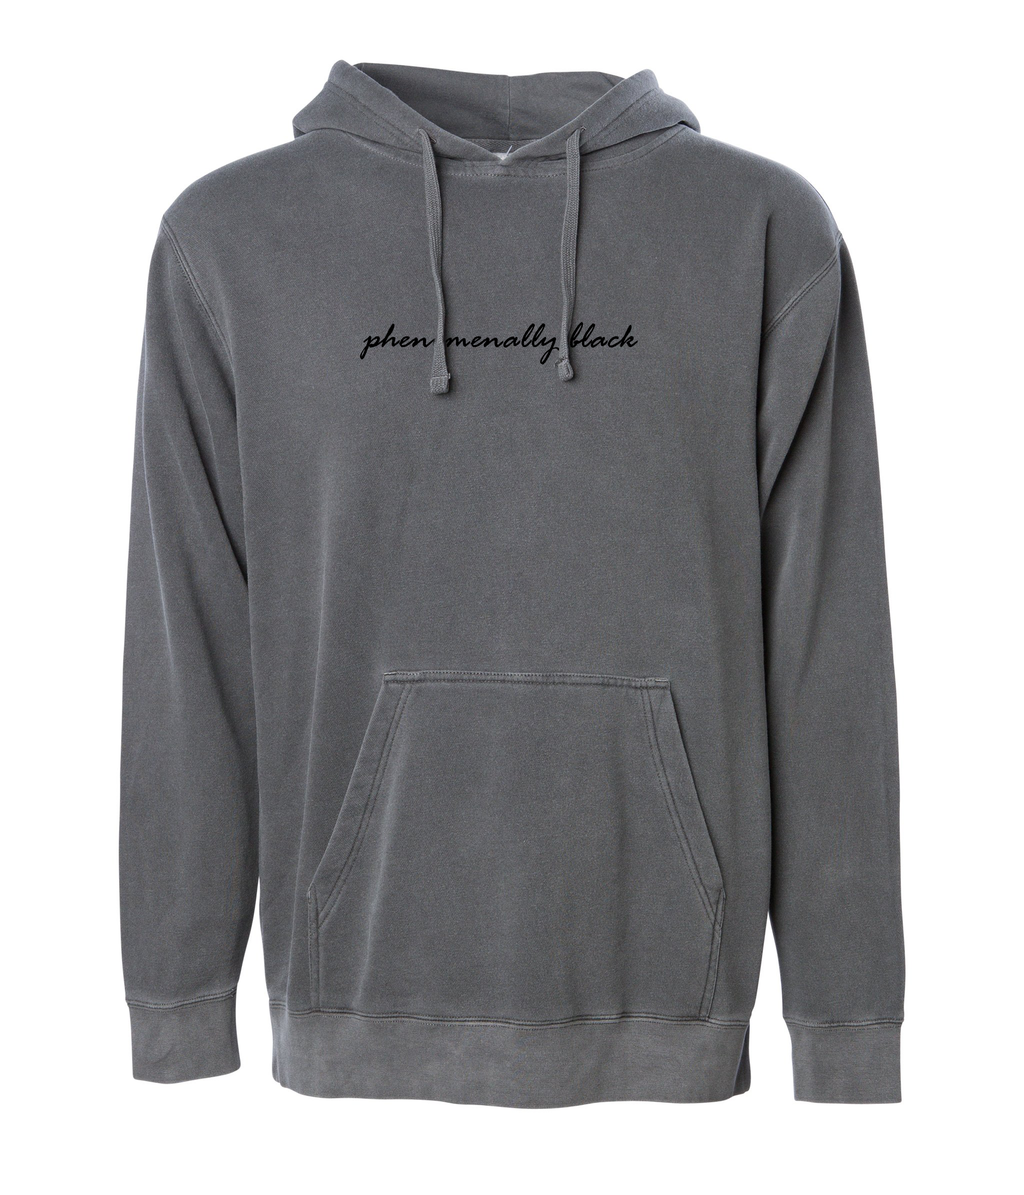 Phenomenally Black Soft Hoodie